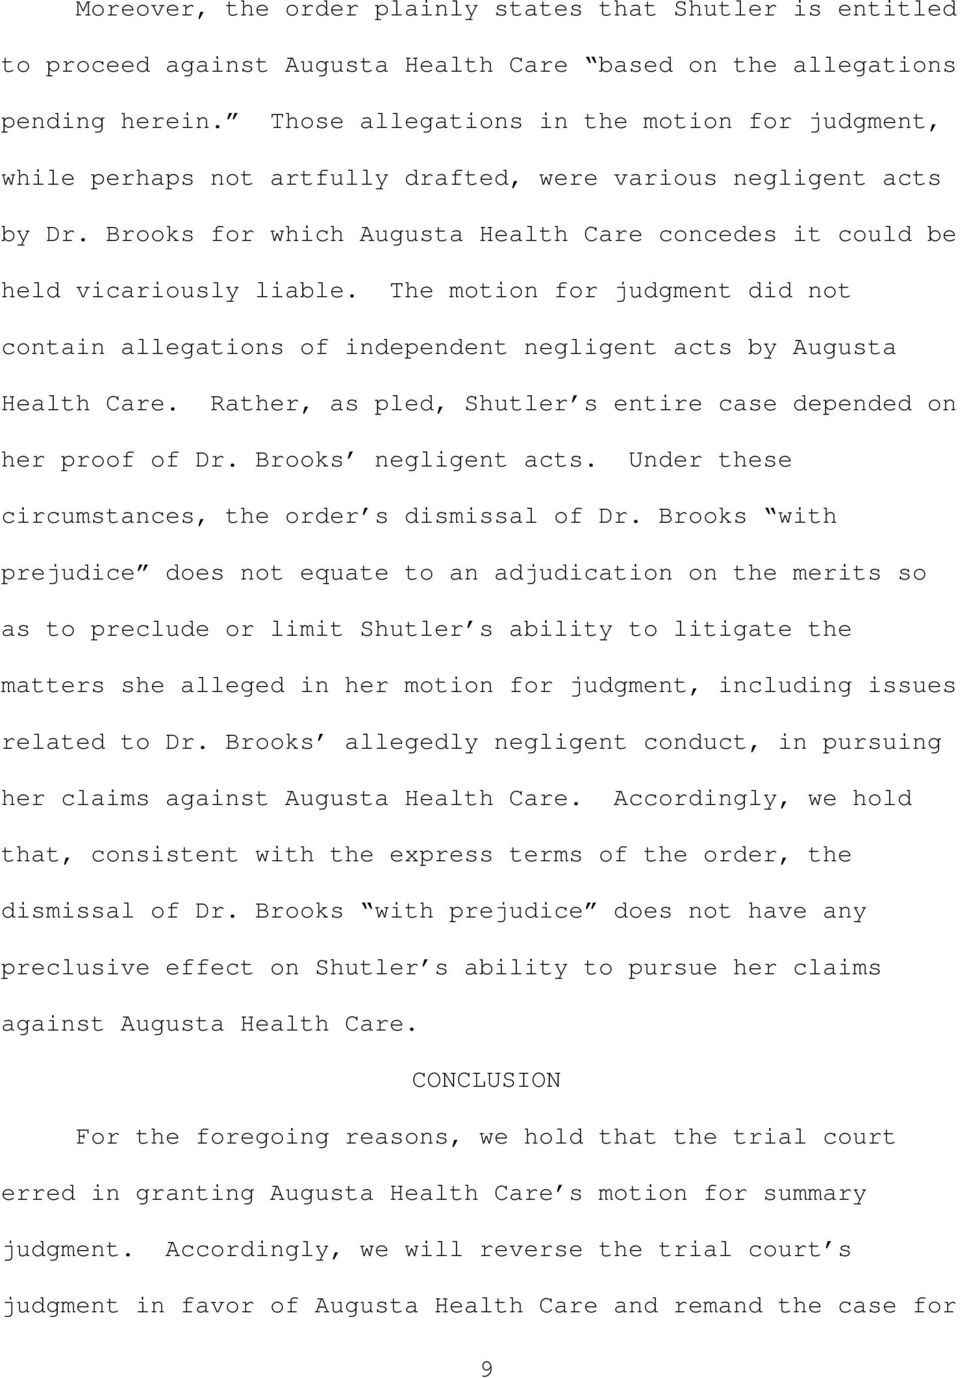 The motion for judgment did not contain allegations of independent negligent acts by Augusta Health Care. Rather, as pled, Shutler s entire case depended on her proof of Dr. Brooks negligent acts.